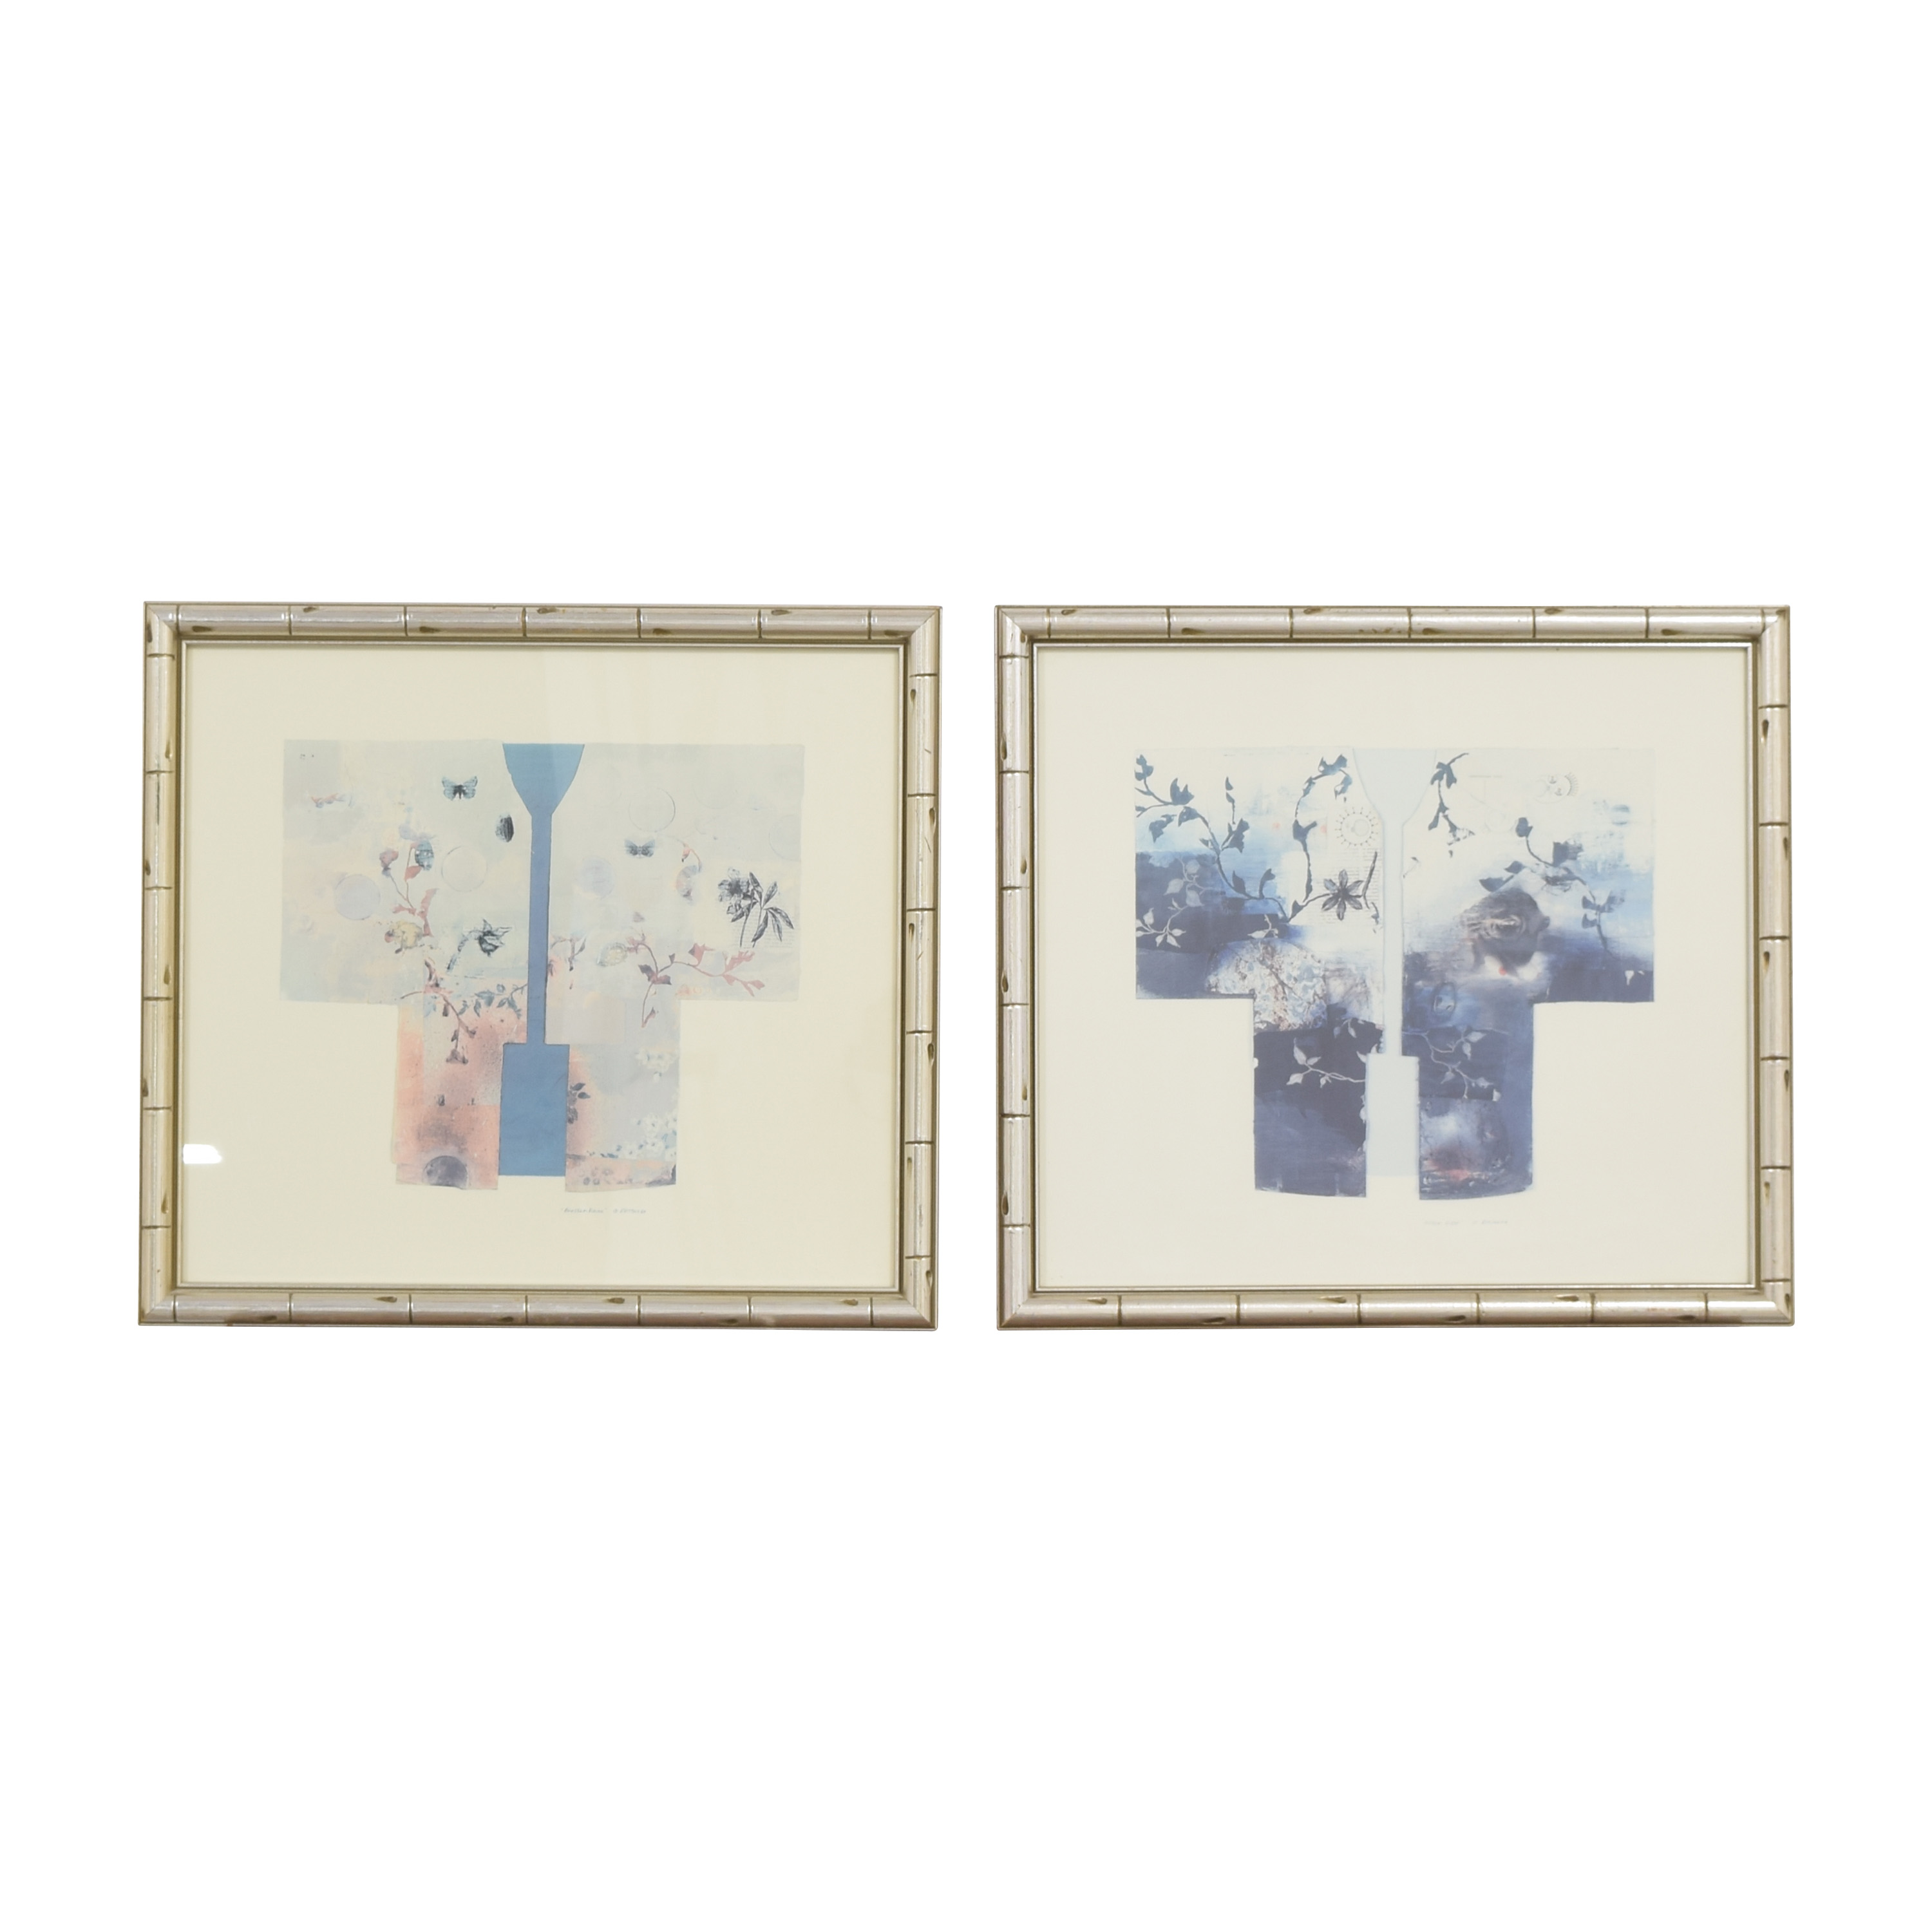 buy Framed Matsuoka Kimonos Wall Art  Decor